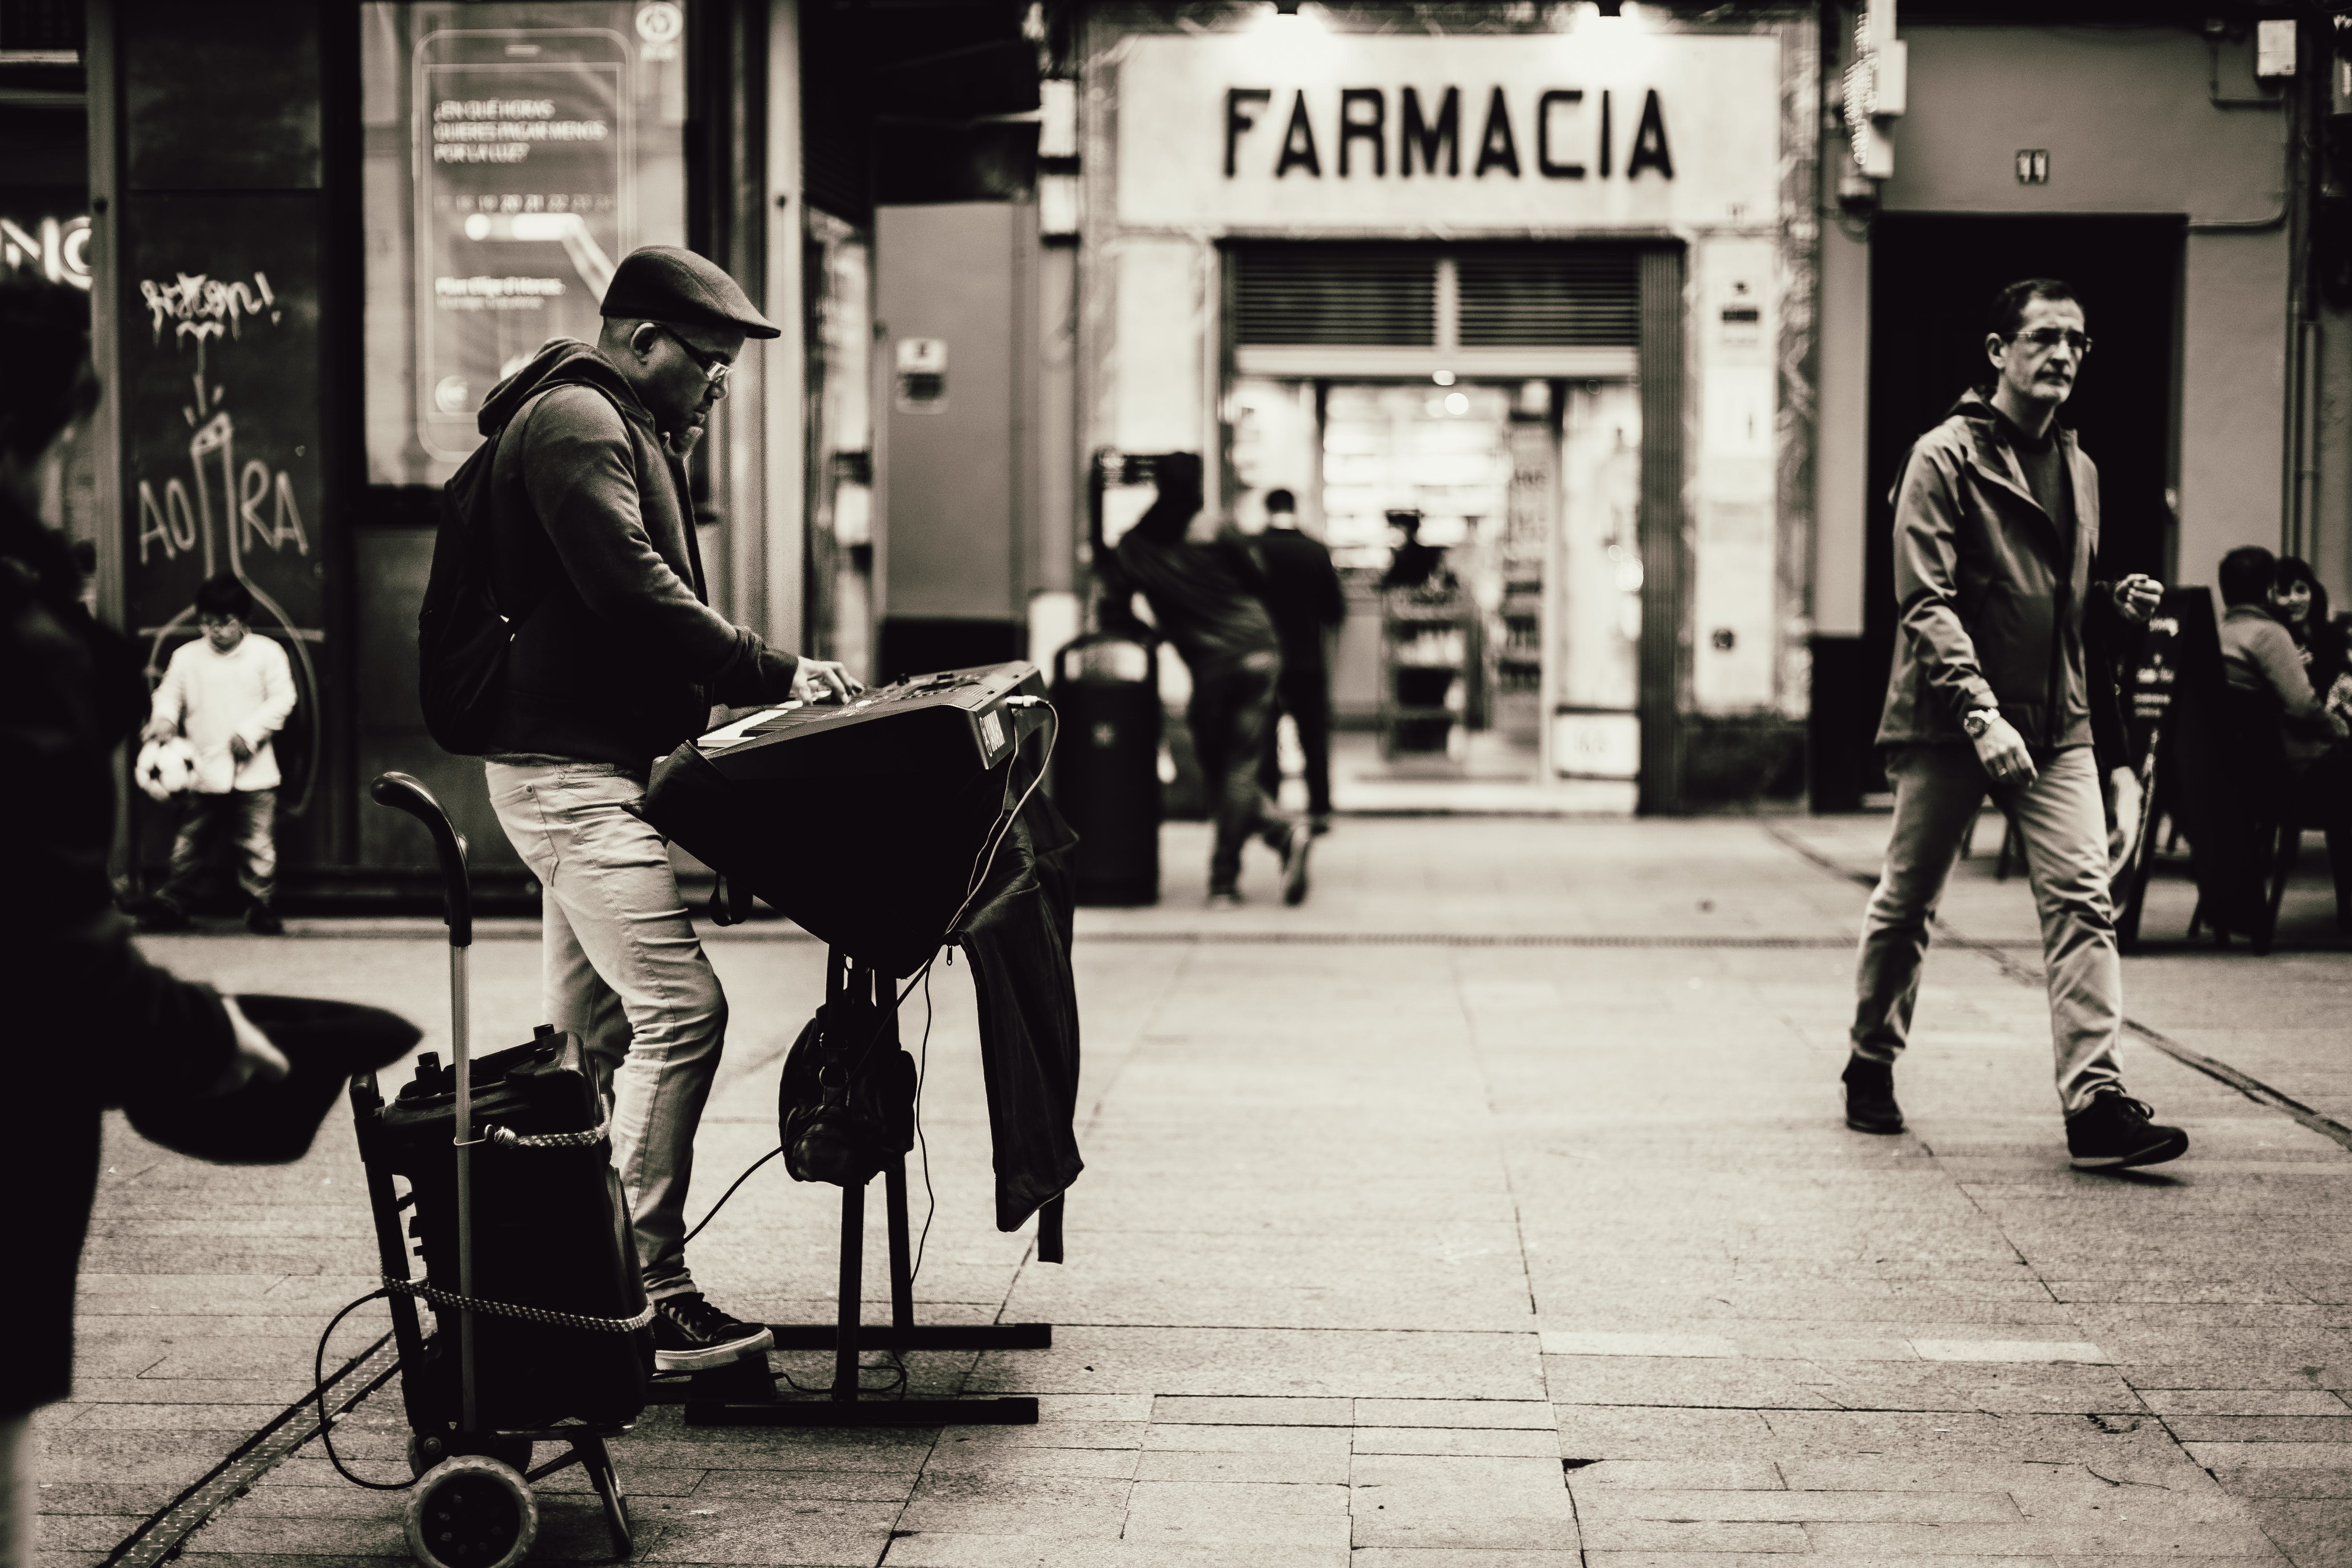 Grayscale Photography of Farmacia Store Front